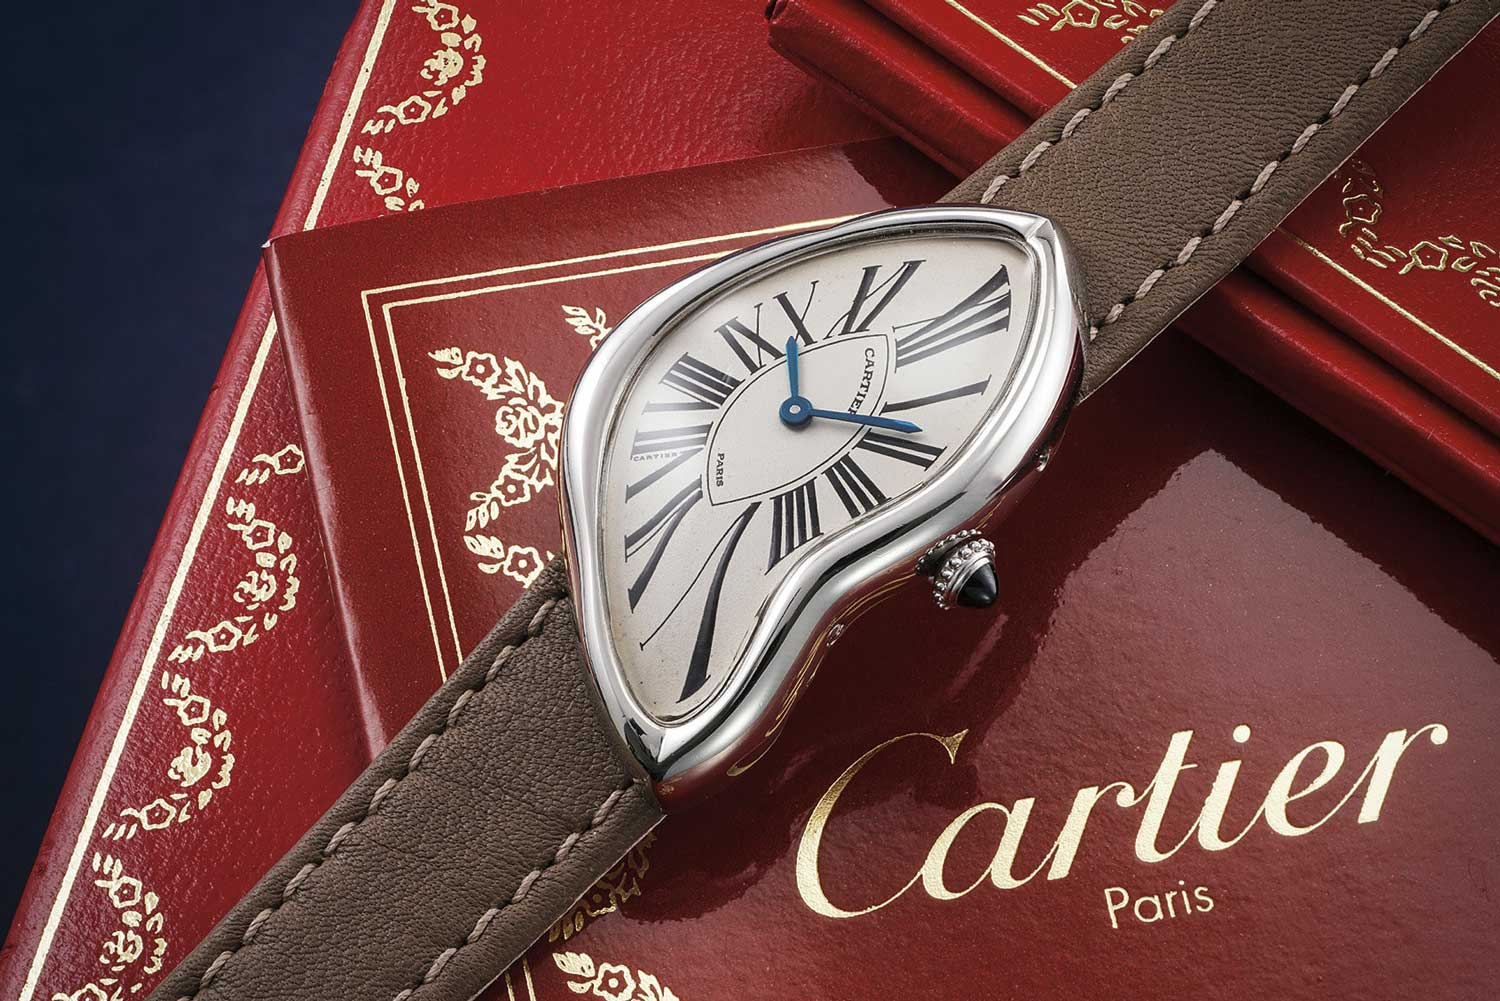 A 1992 Cartier Tank Crash: a highly limited version produced in the early 1990s and cased in platinum - the rarest case metal and most exclusive version of the 1990s Crash, sold through the maison's prestigious Paris boutique; this particular example sold with Phillips at their November 2020 Geneva auction, for CHF258,300 (image: phillips.com)